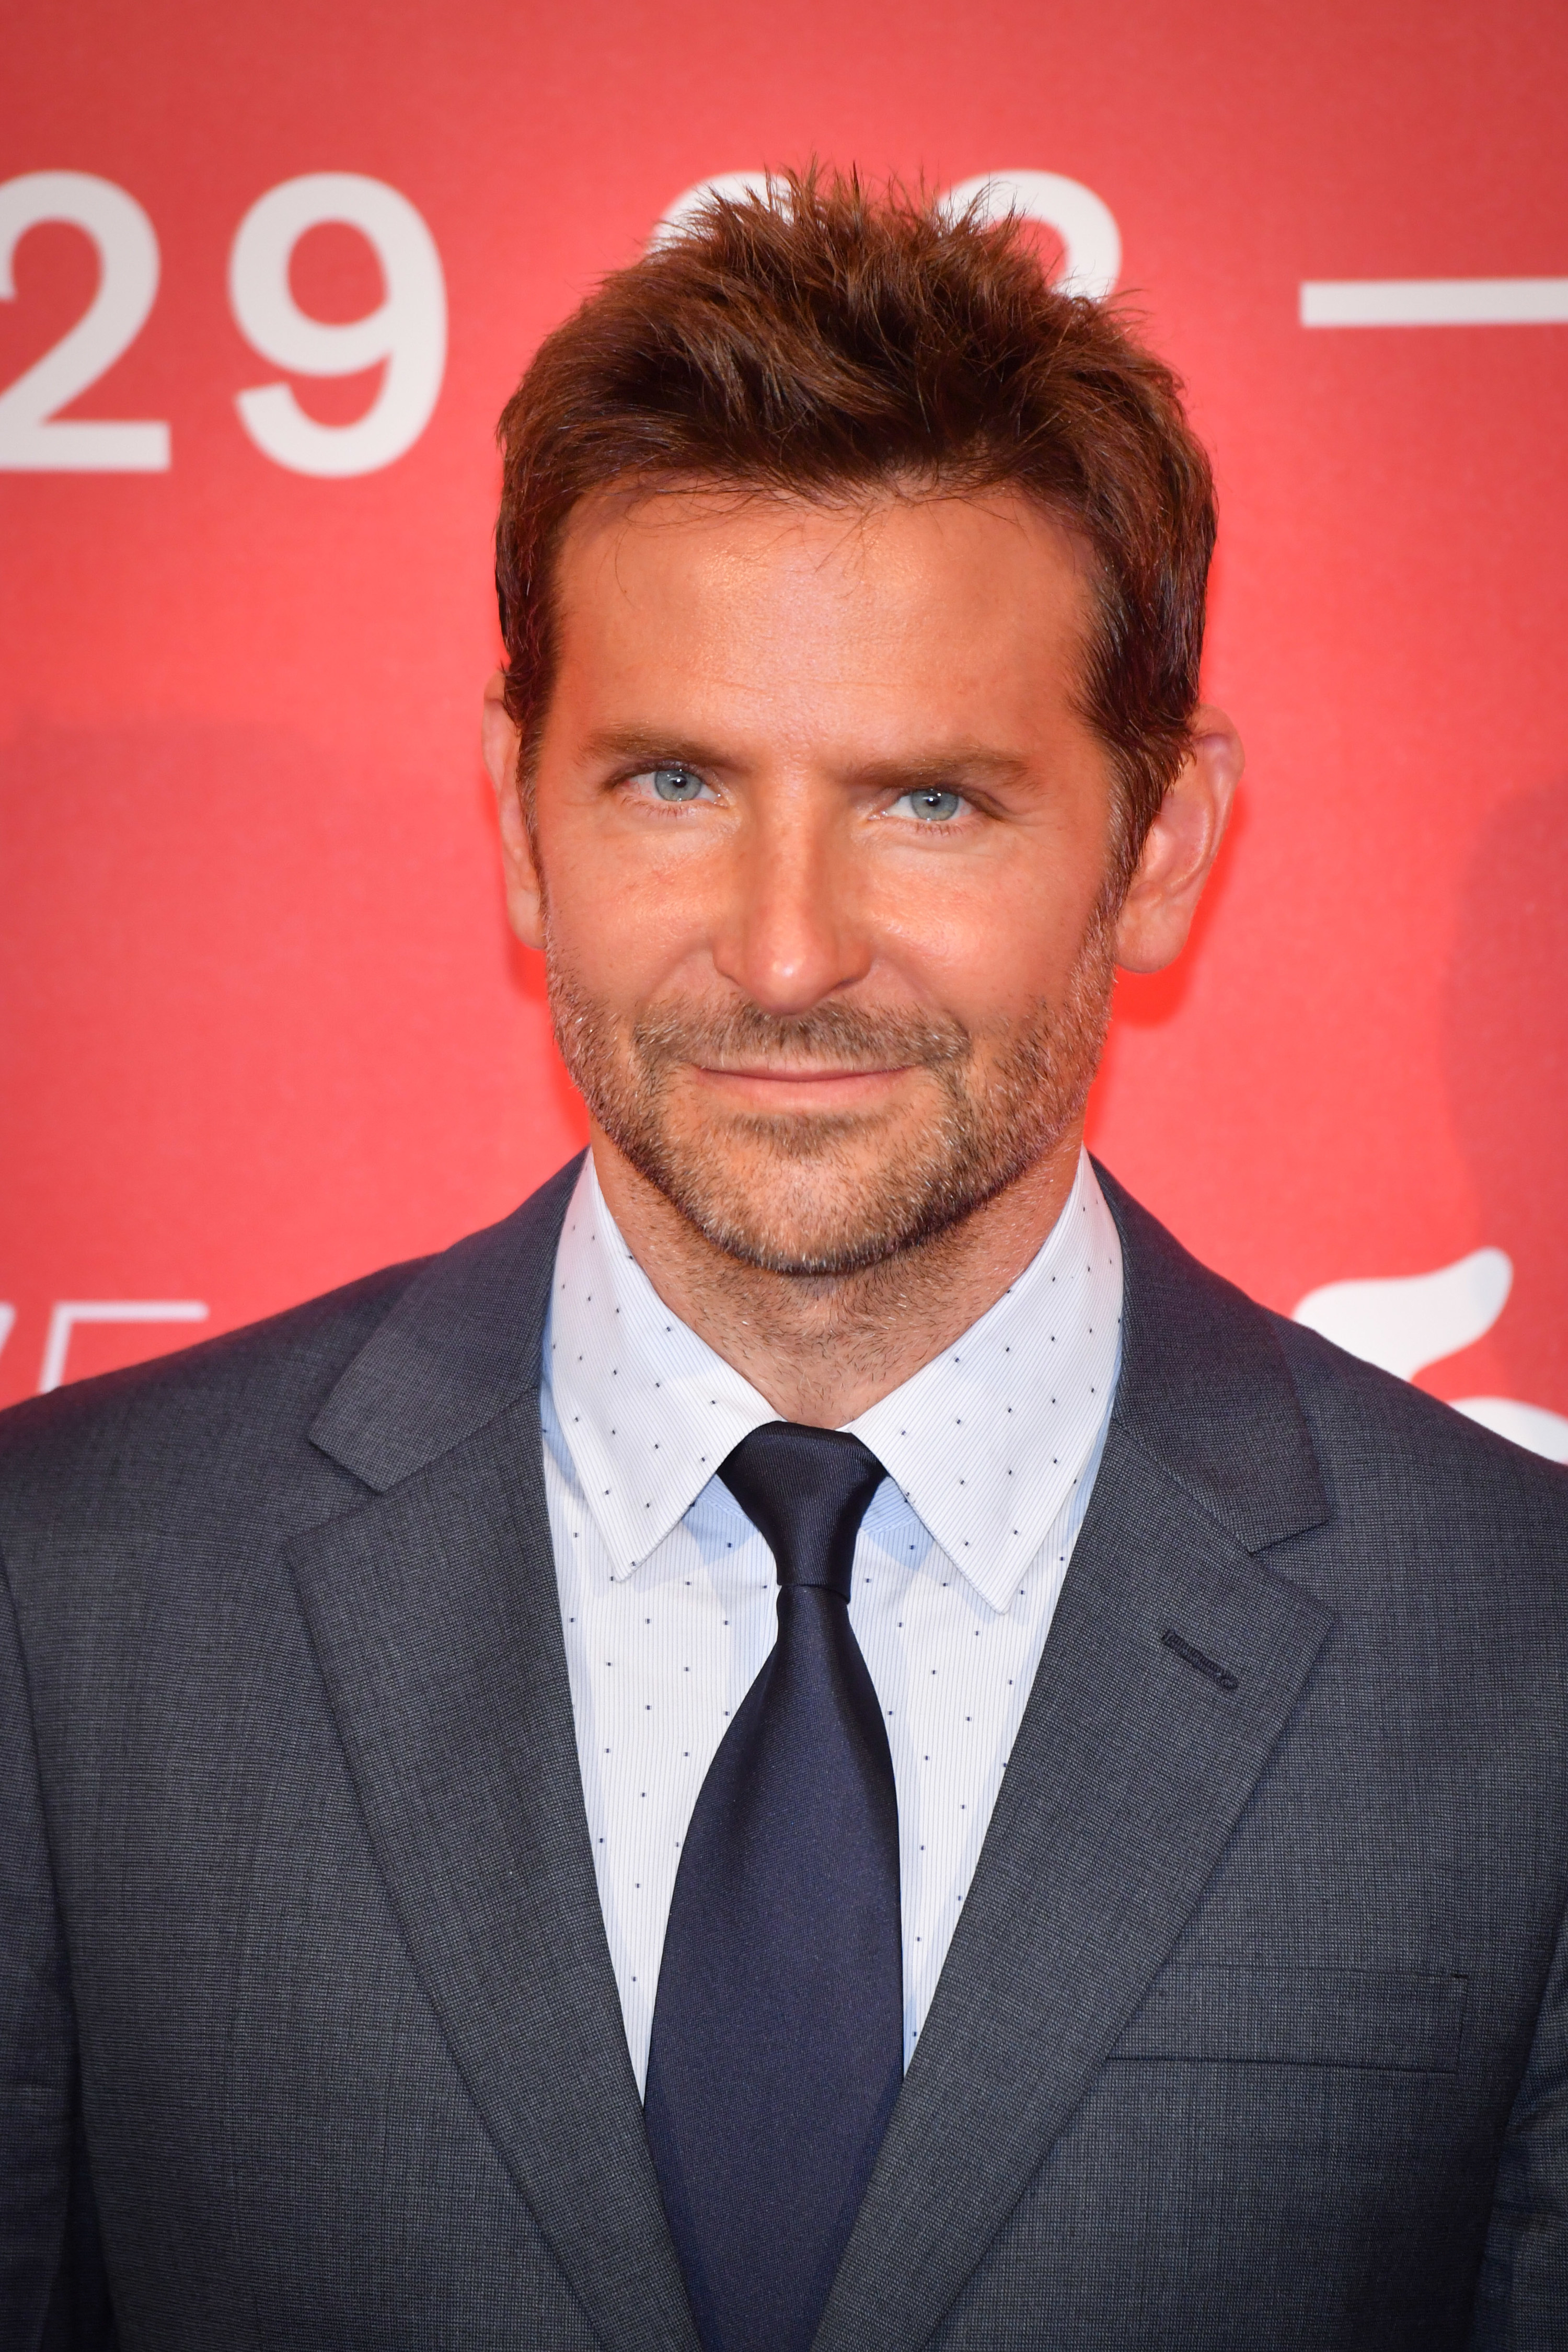 Bradley Cooper attends 'A Star Is Born' photocall during the 75th Venice Film Festival.